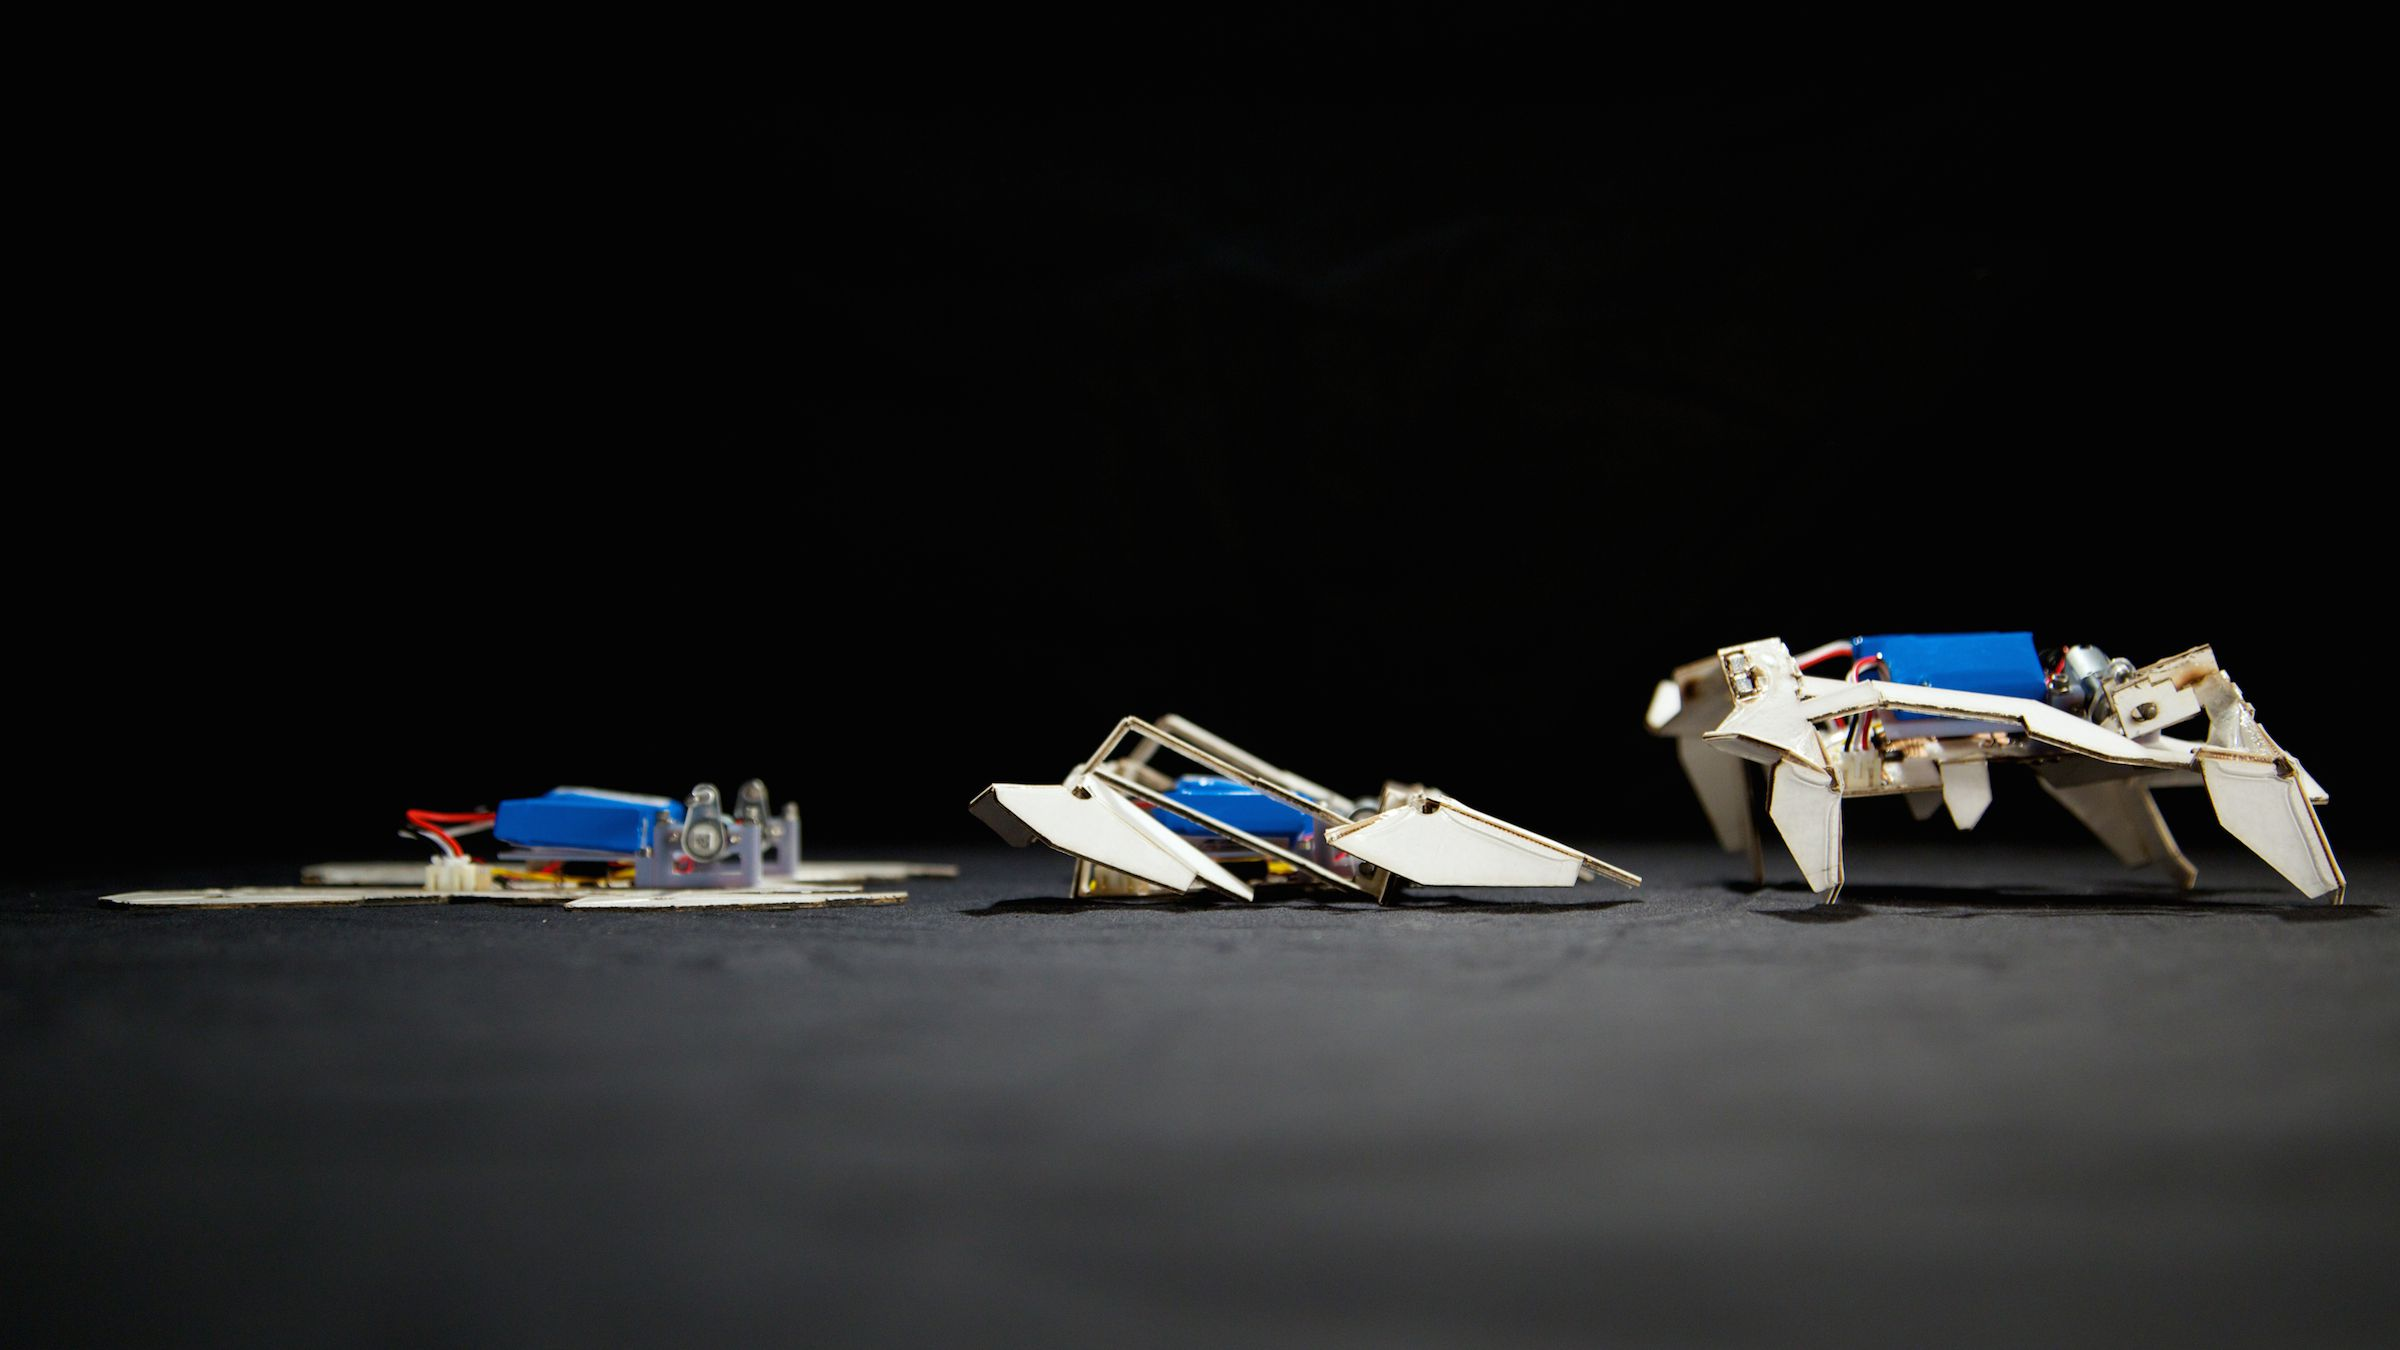 Robot that assembles itself and crawls and turns